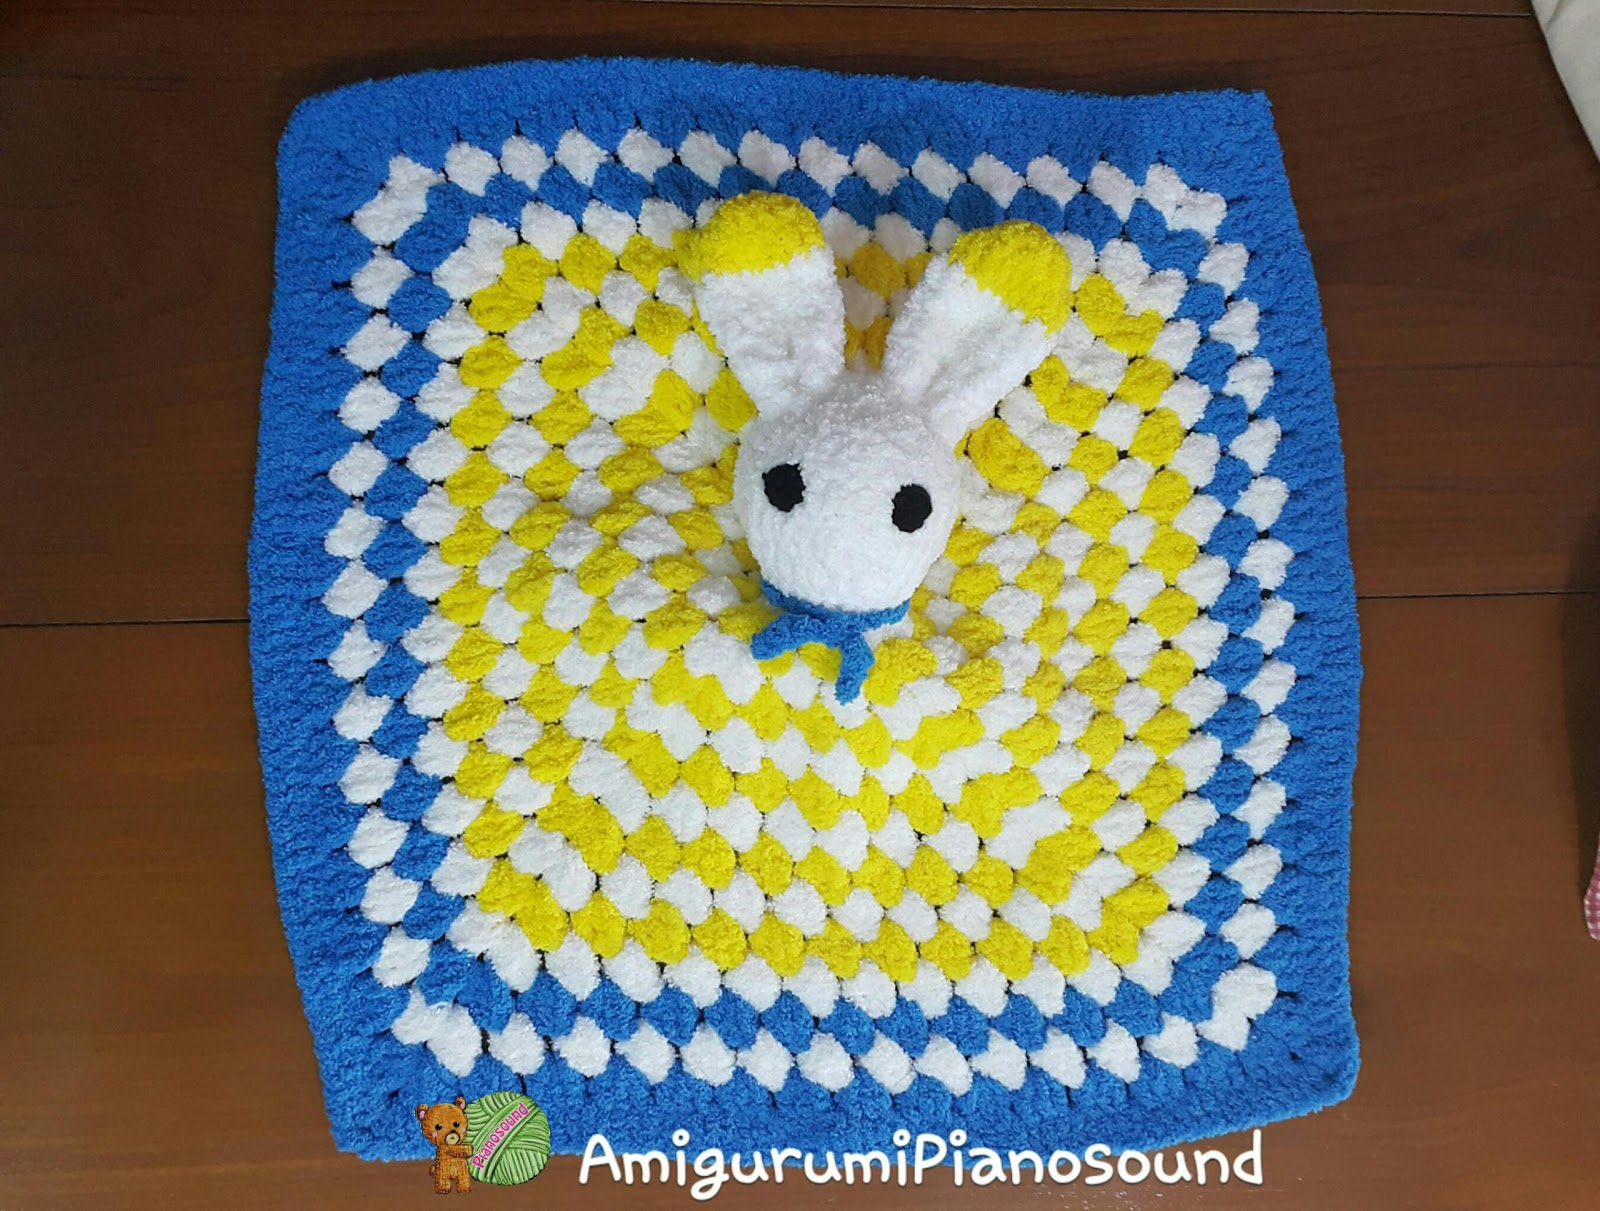 It Is Really Fun To Crochet This, With Simple Granny Square And Adding  Bunny Head To It Granny Square Is A Classic Crochet To Work With, And  Result Always